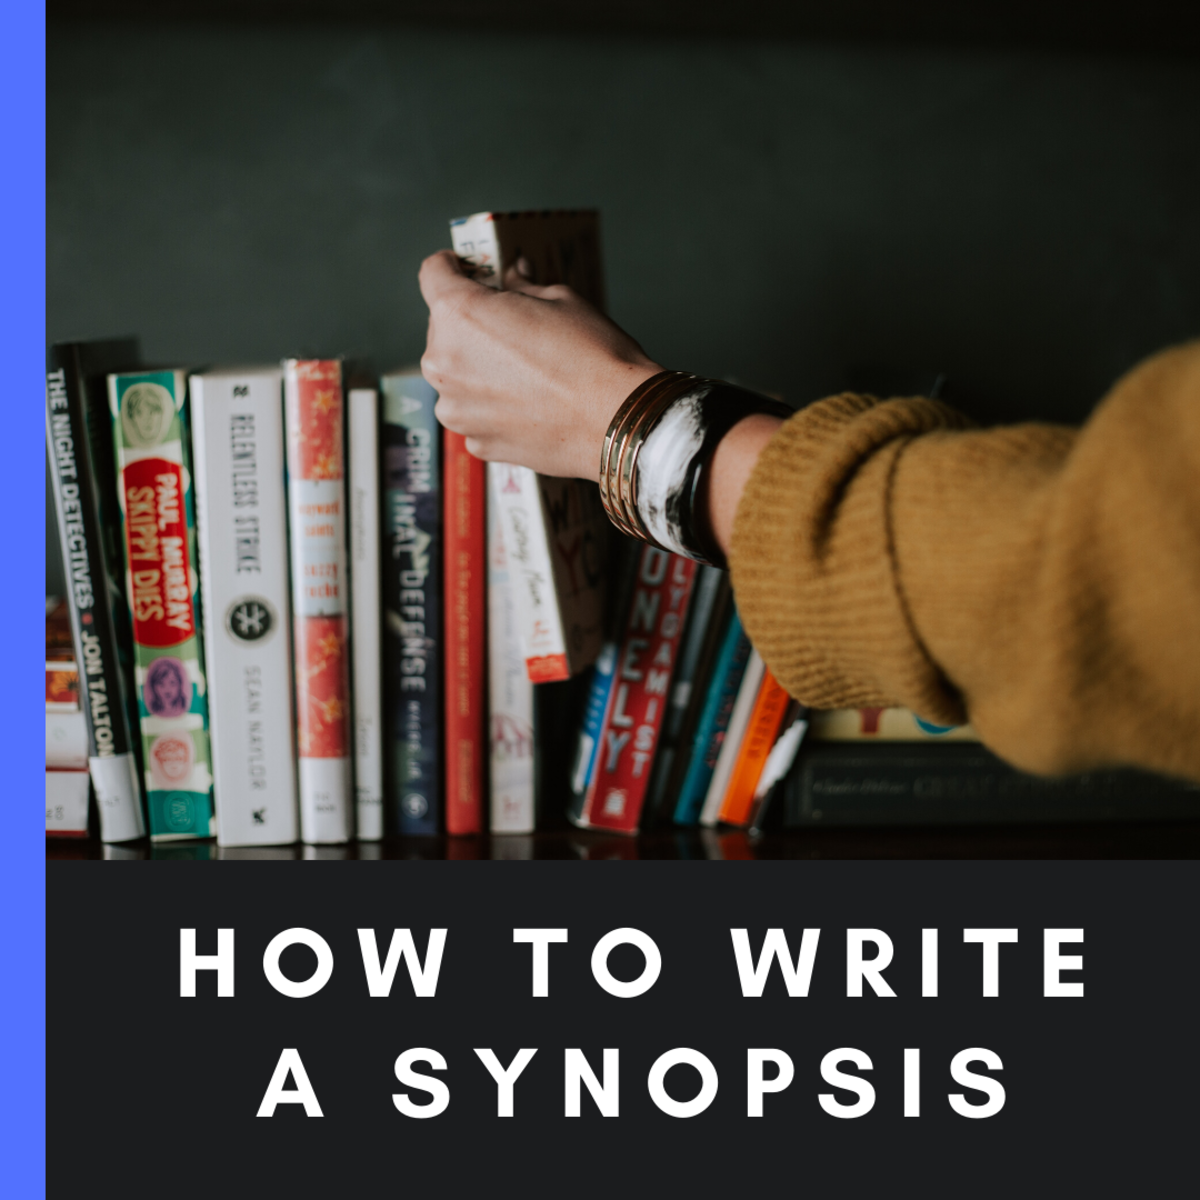 How to Write a Synopsis and Get Your Book Published